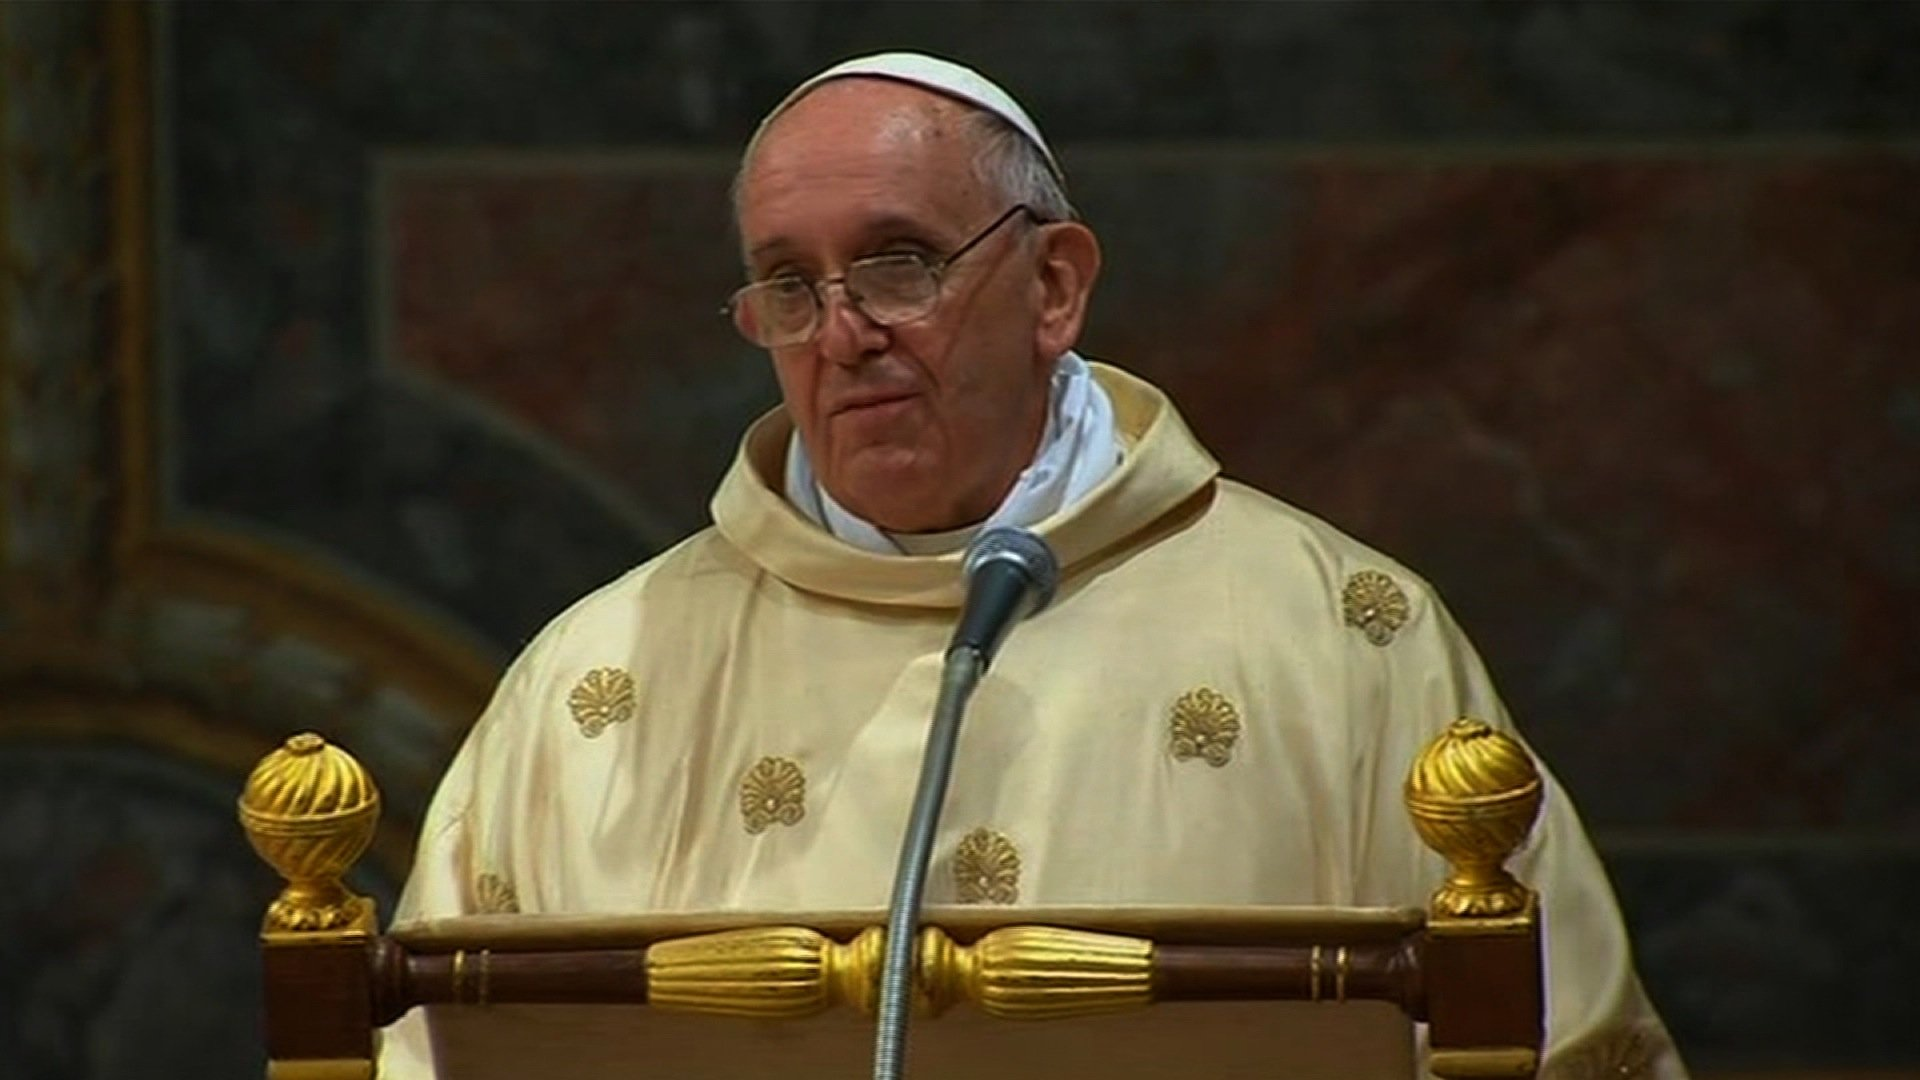 Pope Francis' First Mass